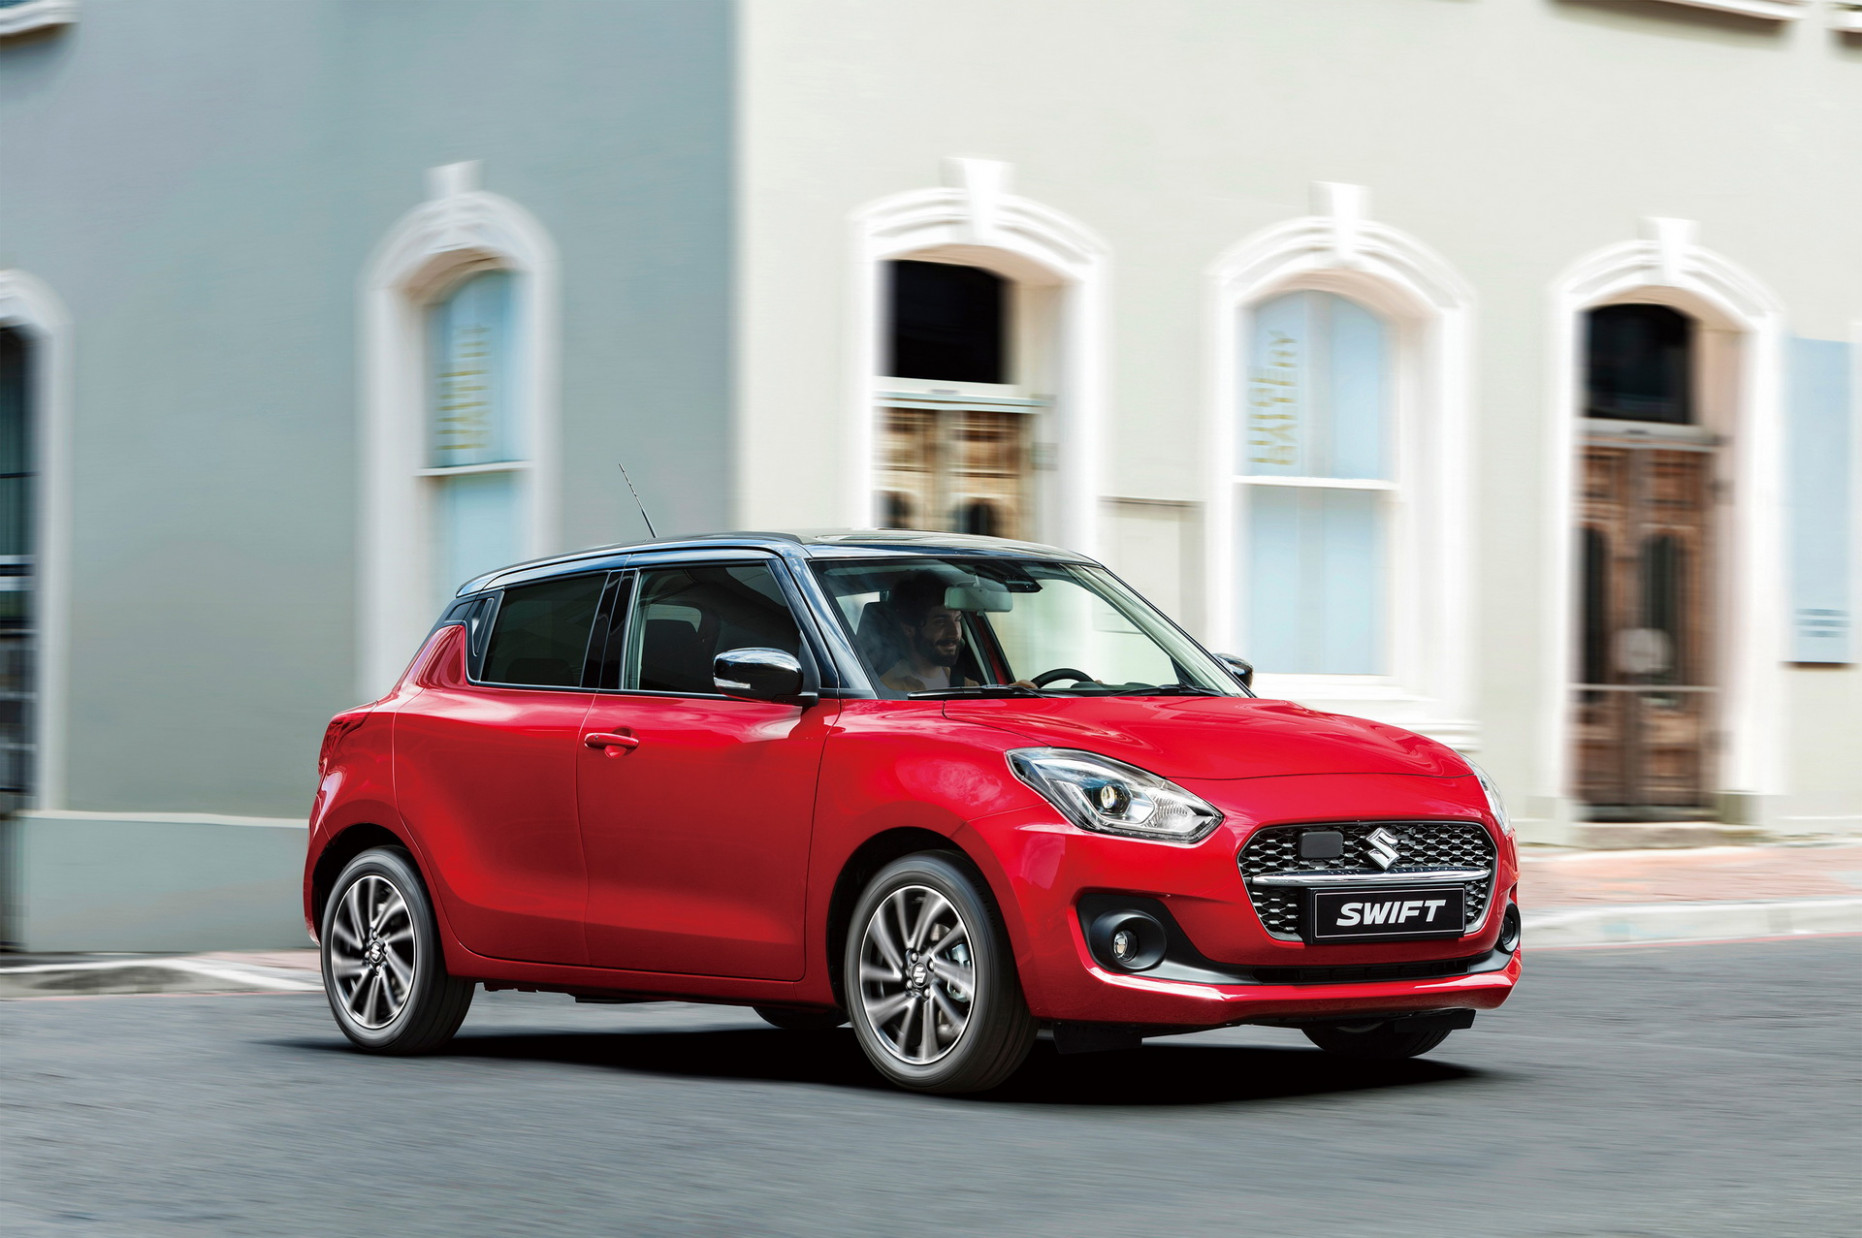 Performance and New Engine 2022 Suzuki Swift